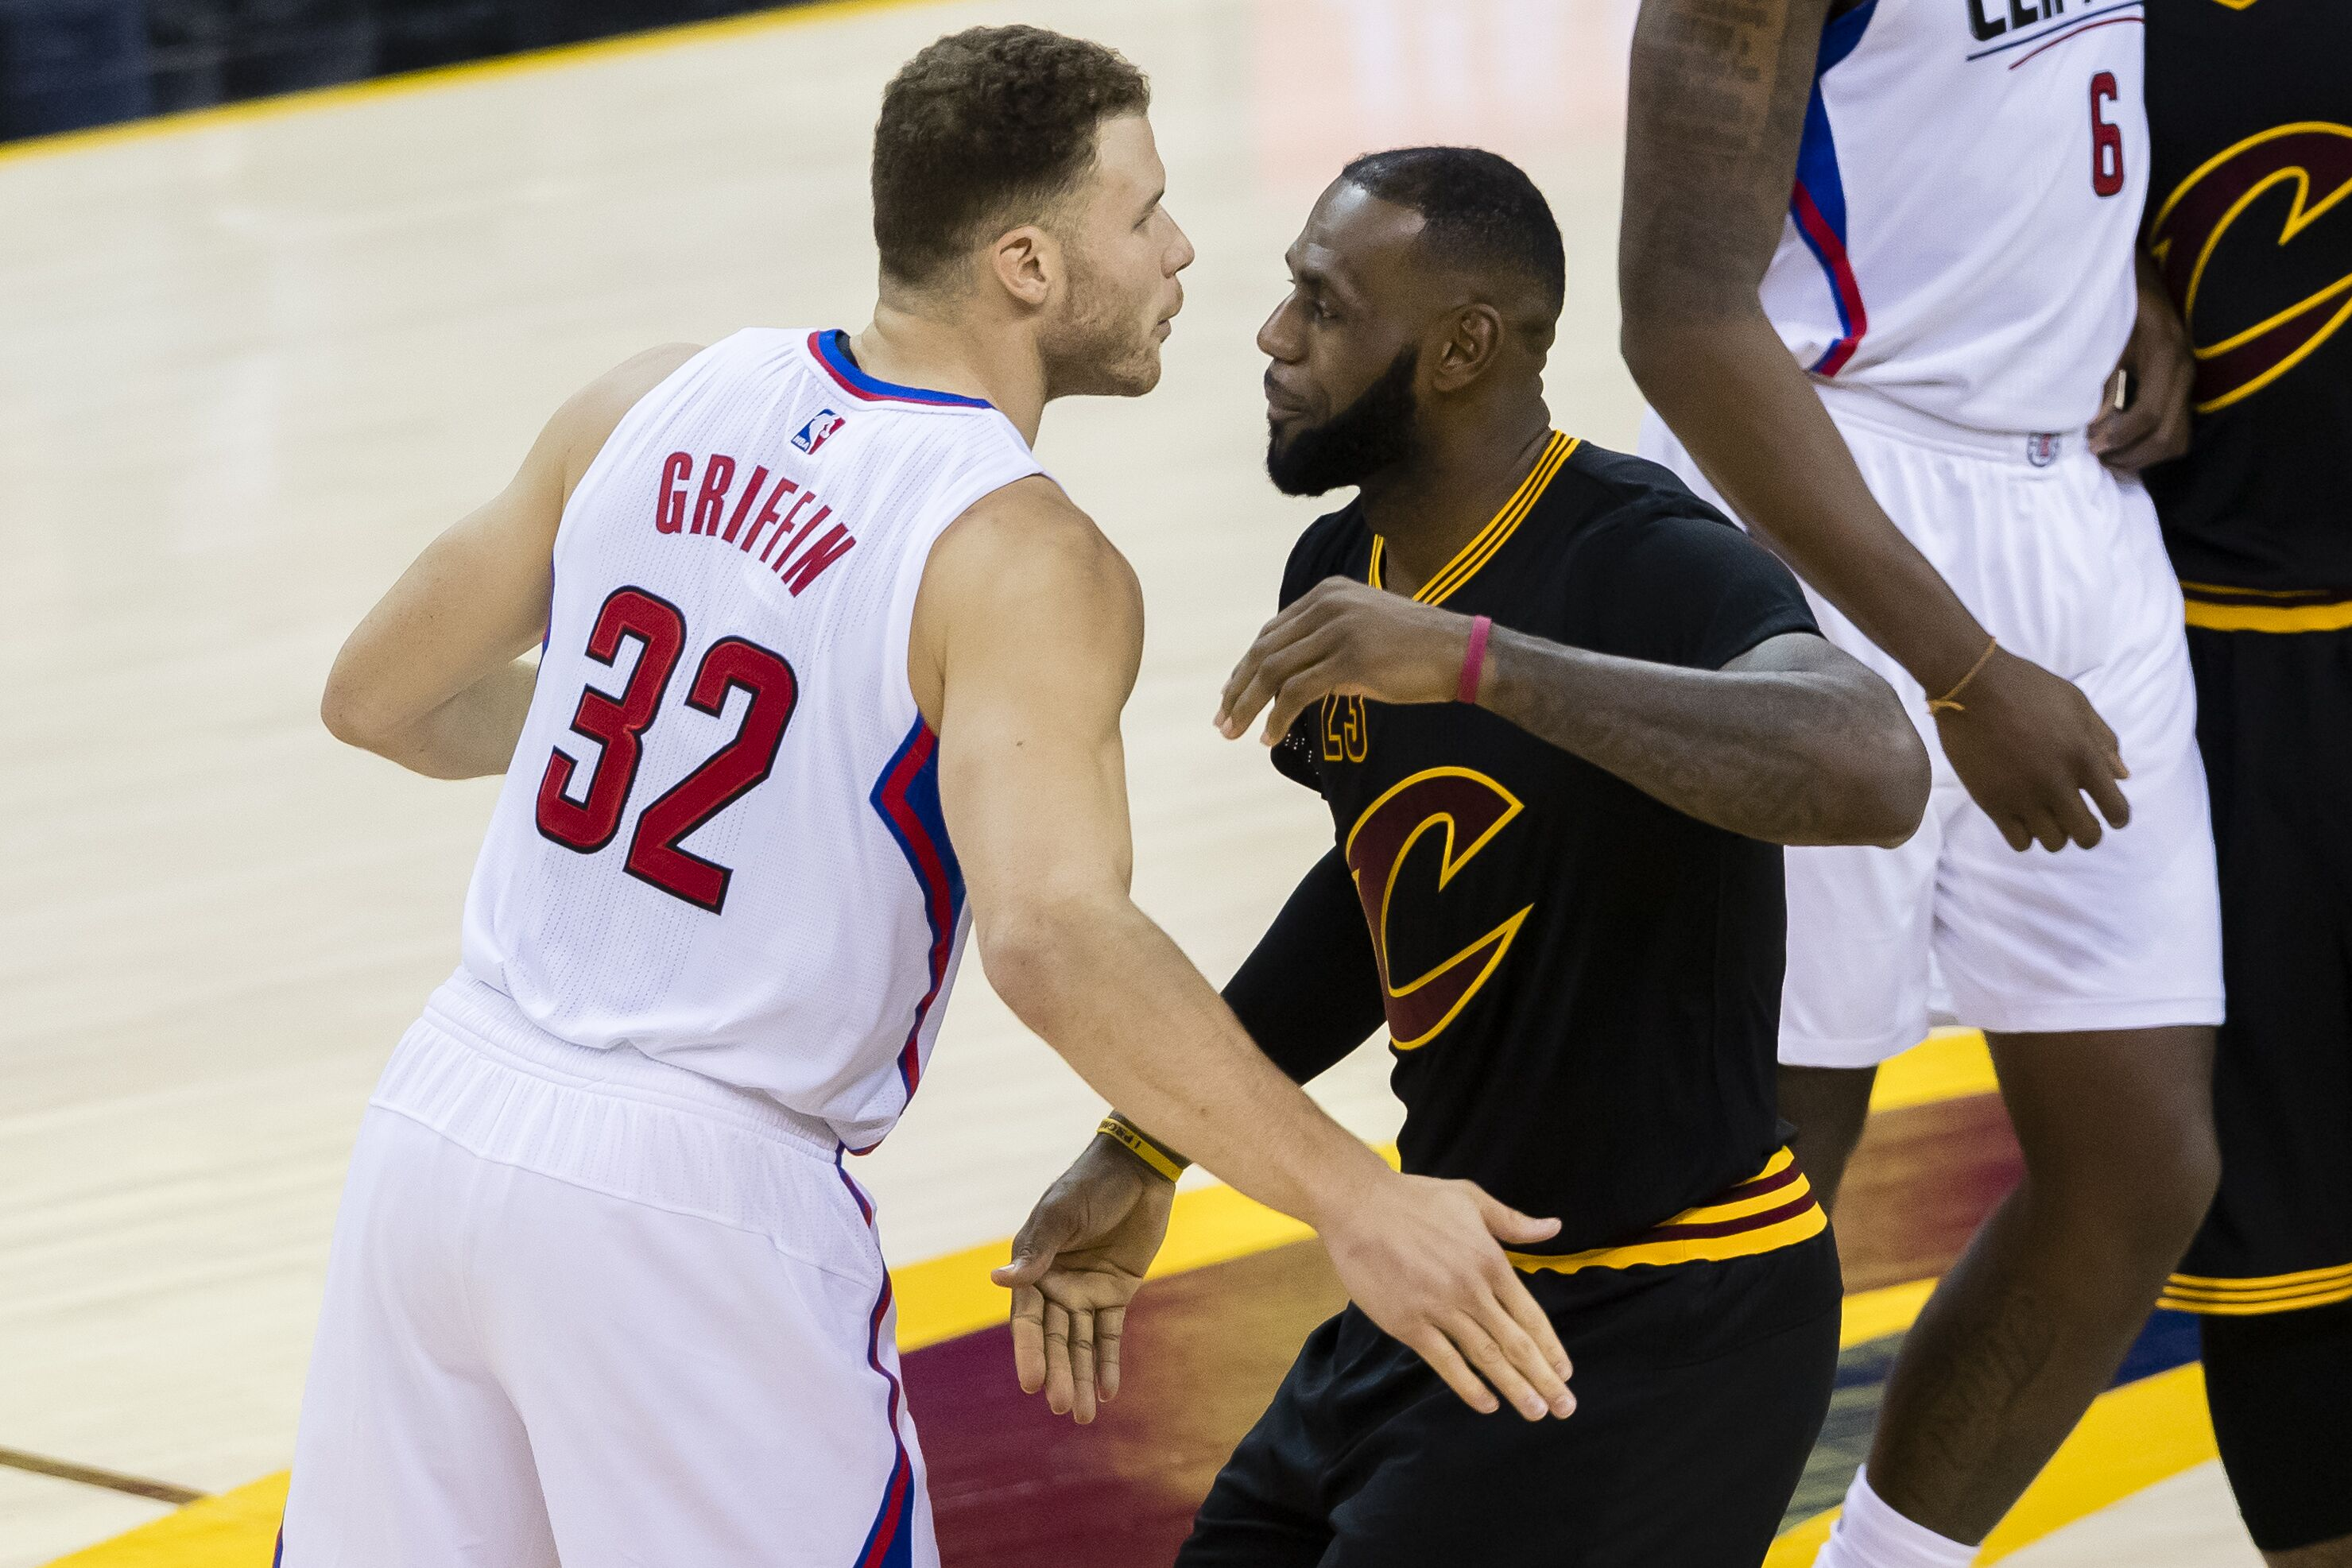 643974384-los-angeles-clippers-v-cleveland-cavaliers.jpg